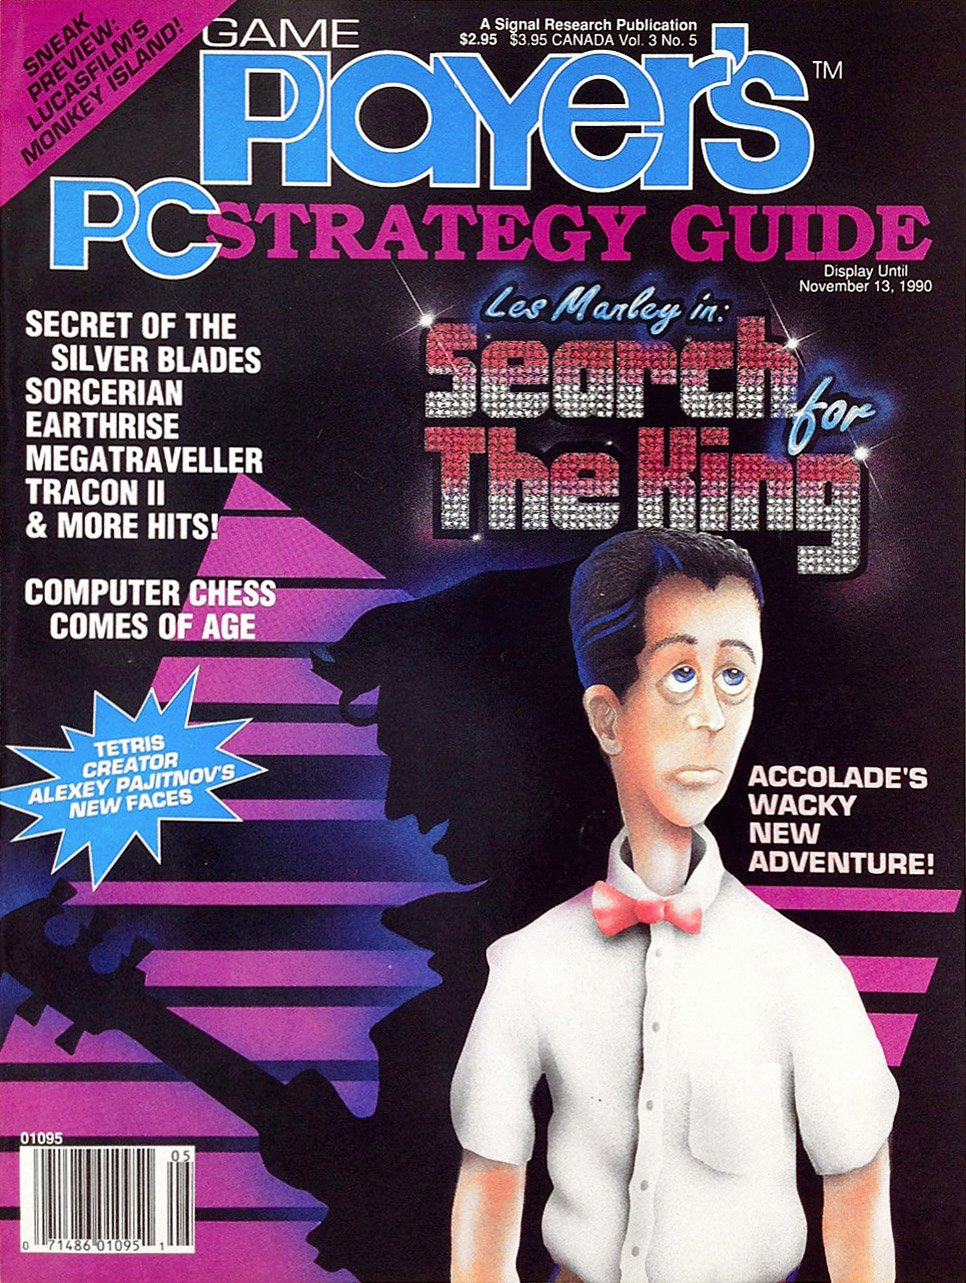 Game Player's PC Strategy Guide Vol.3 No.5 (September/October 1990)